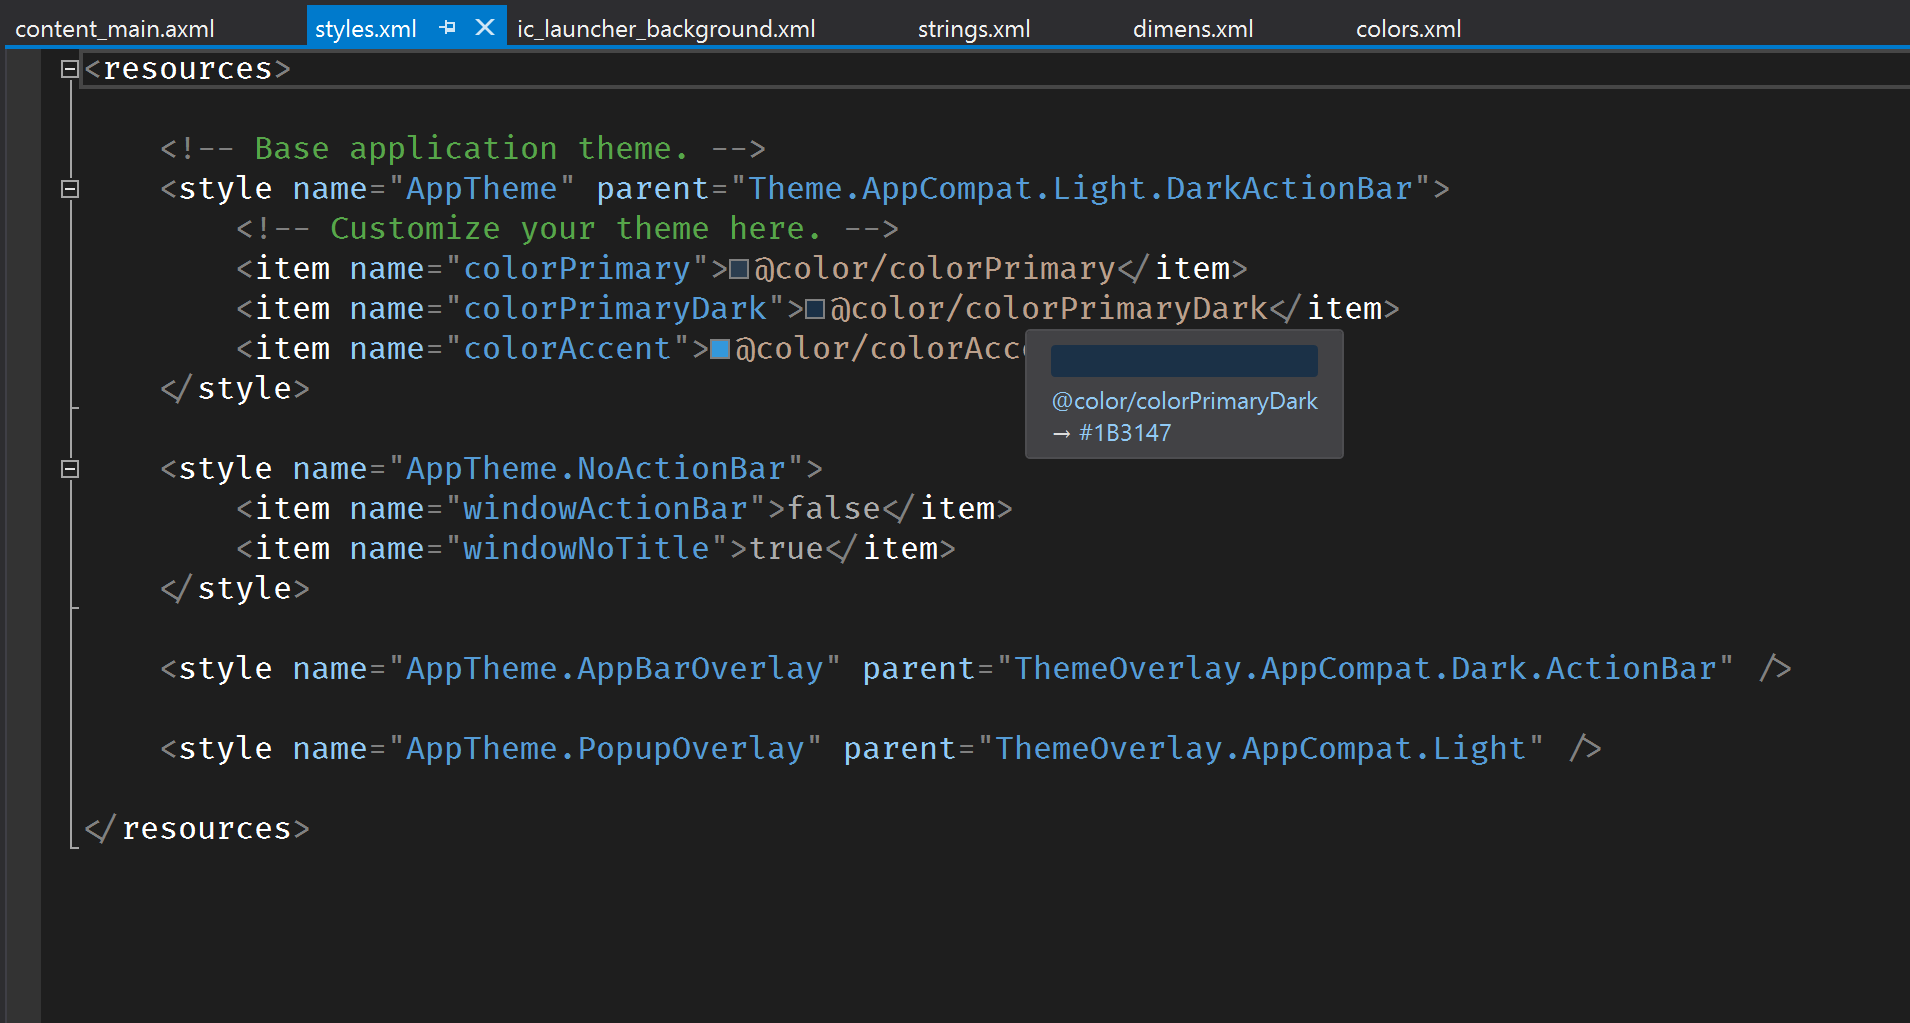 What's new with the Android Designer in Visual Studio 2019